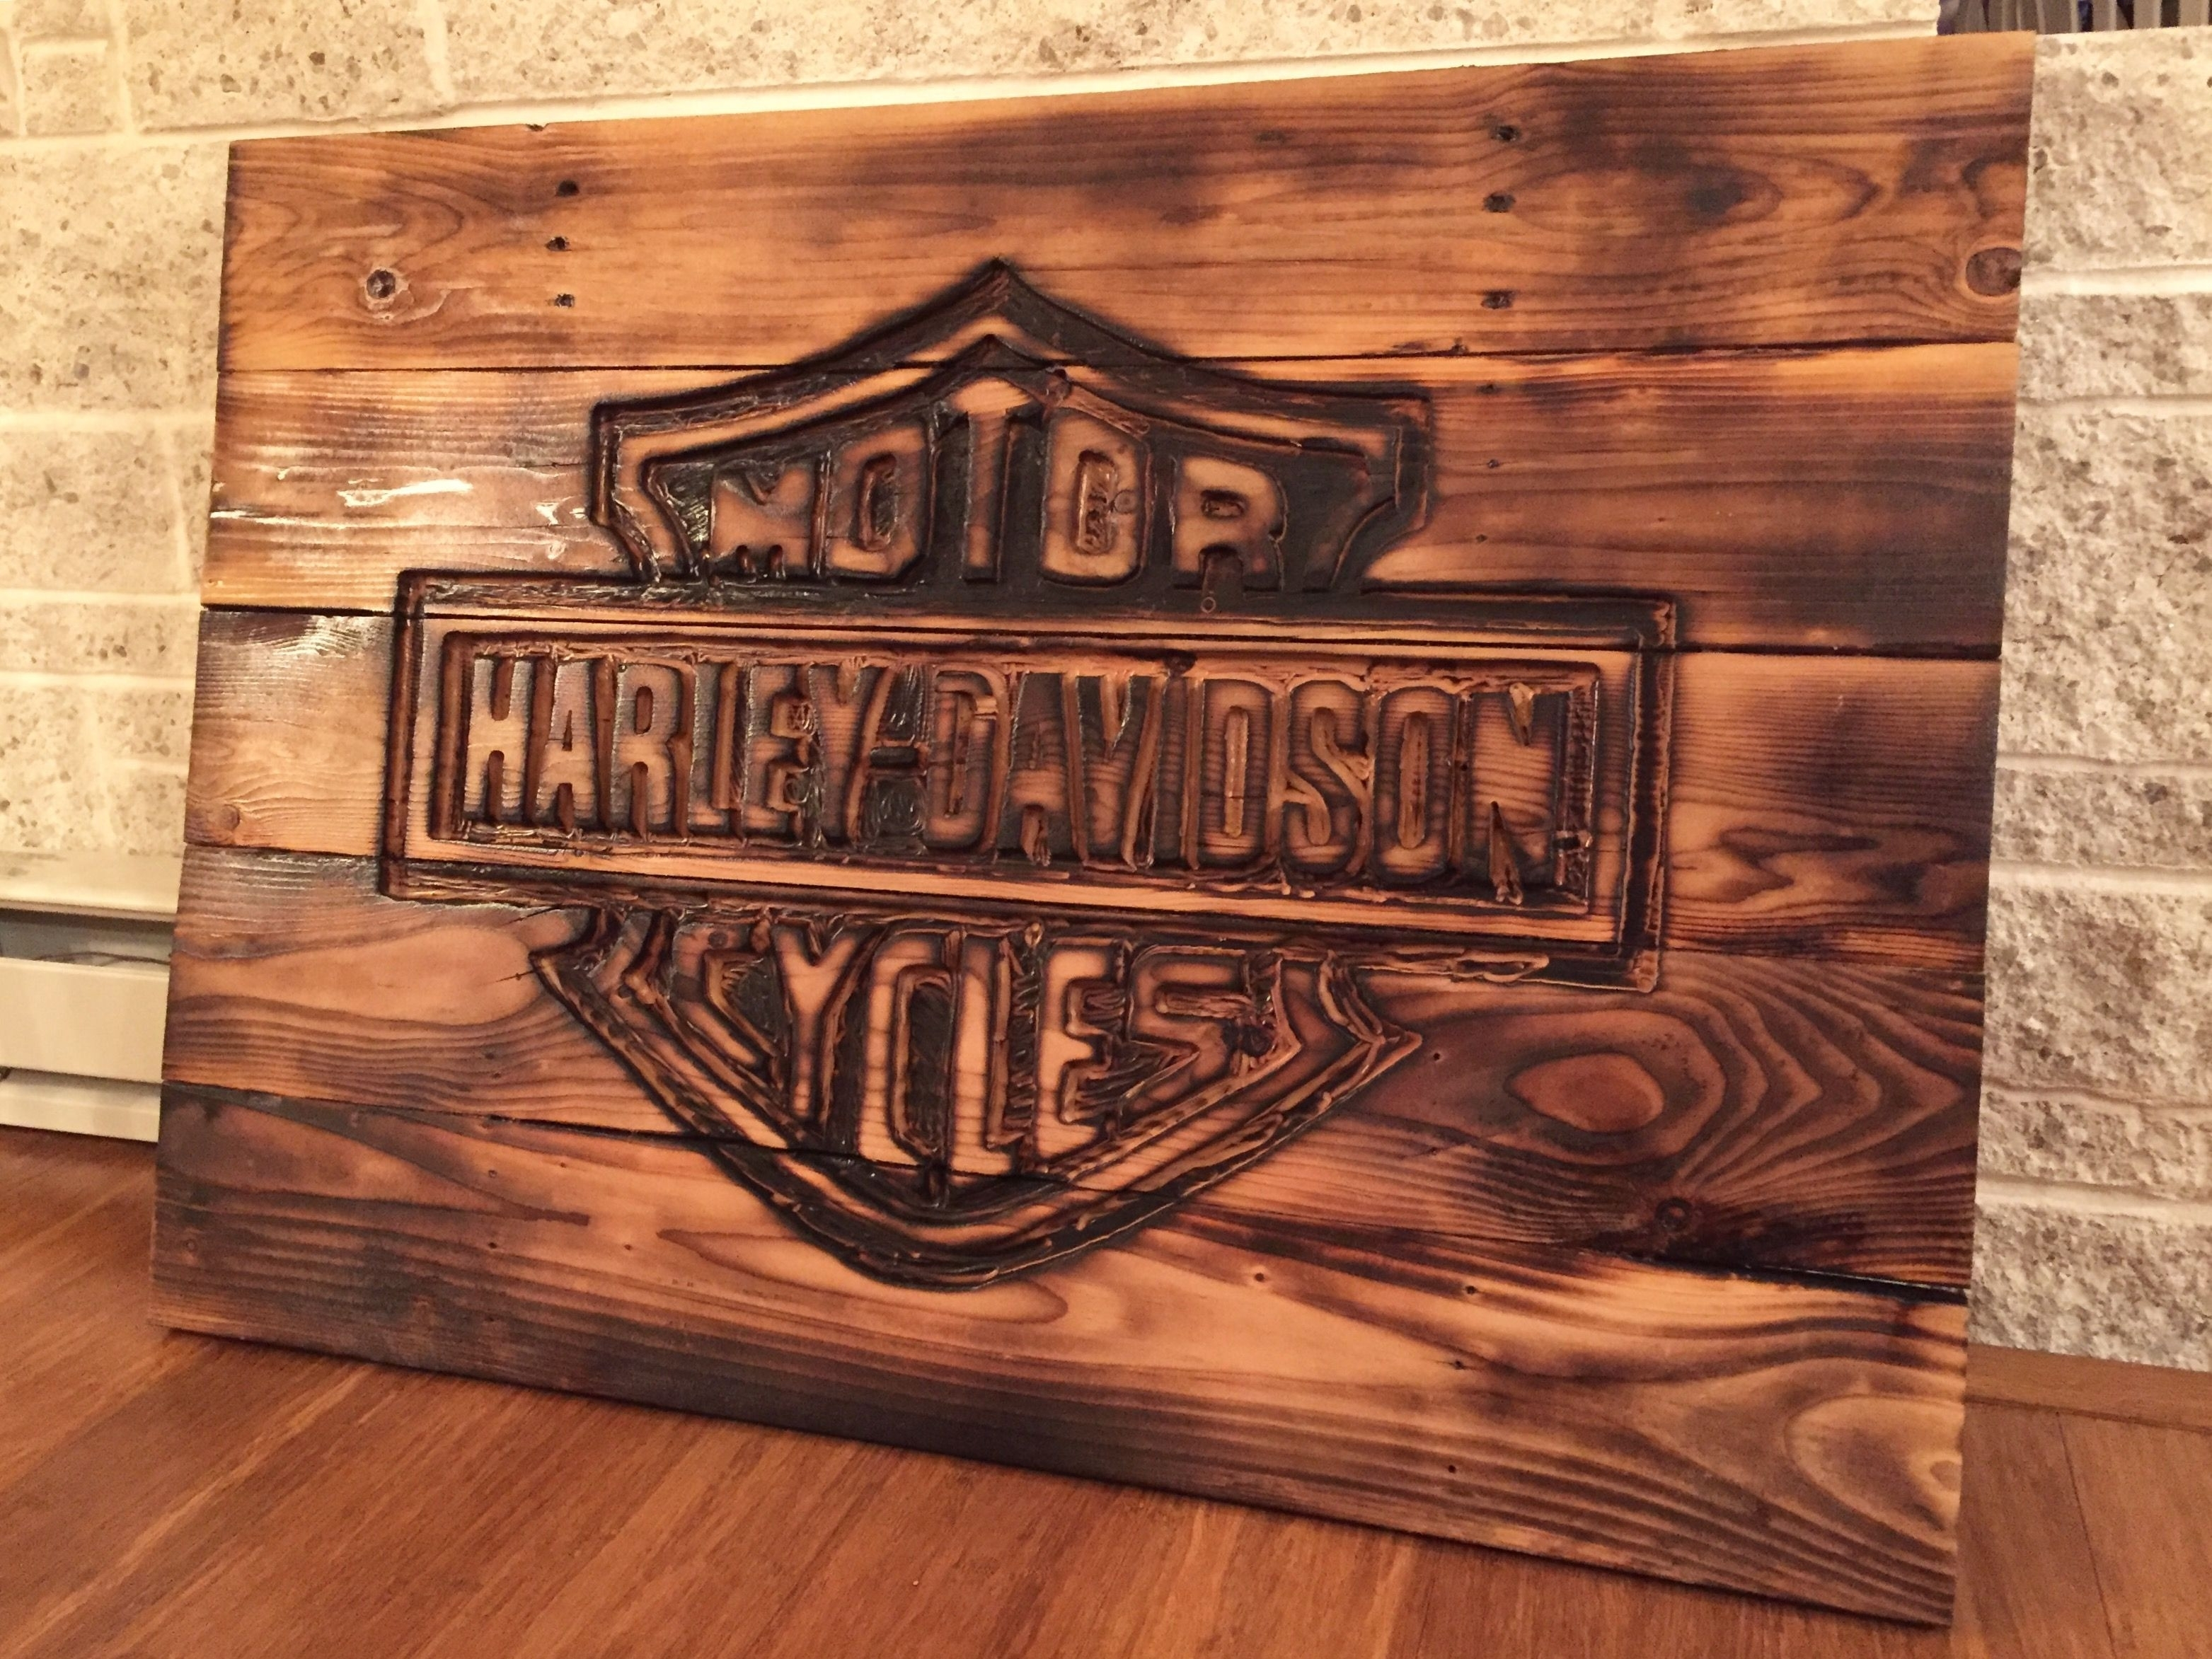 Harley Davidson Sign Made From Pallets Reclaimed Wood Scheme Of Pertaining To 2018 Harley Davidson Wall Art (View 8 of 20)